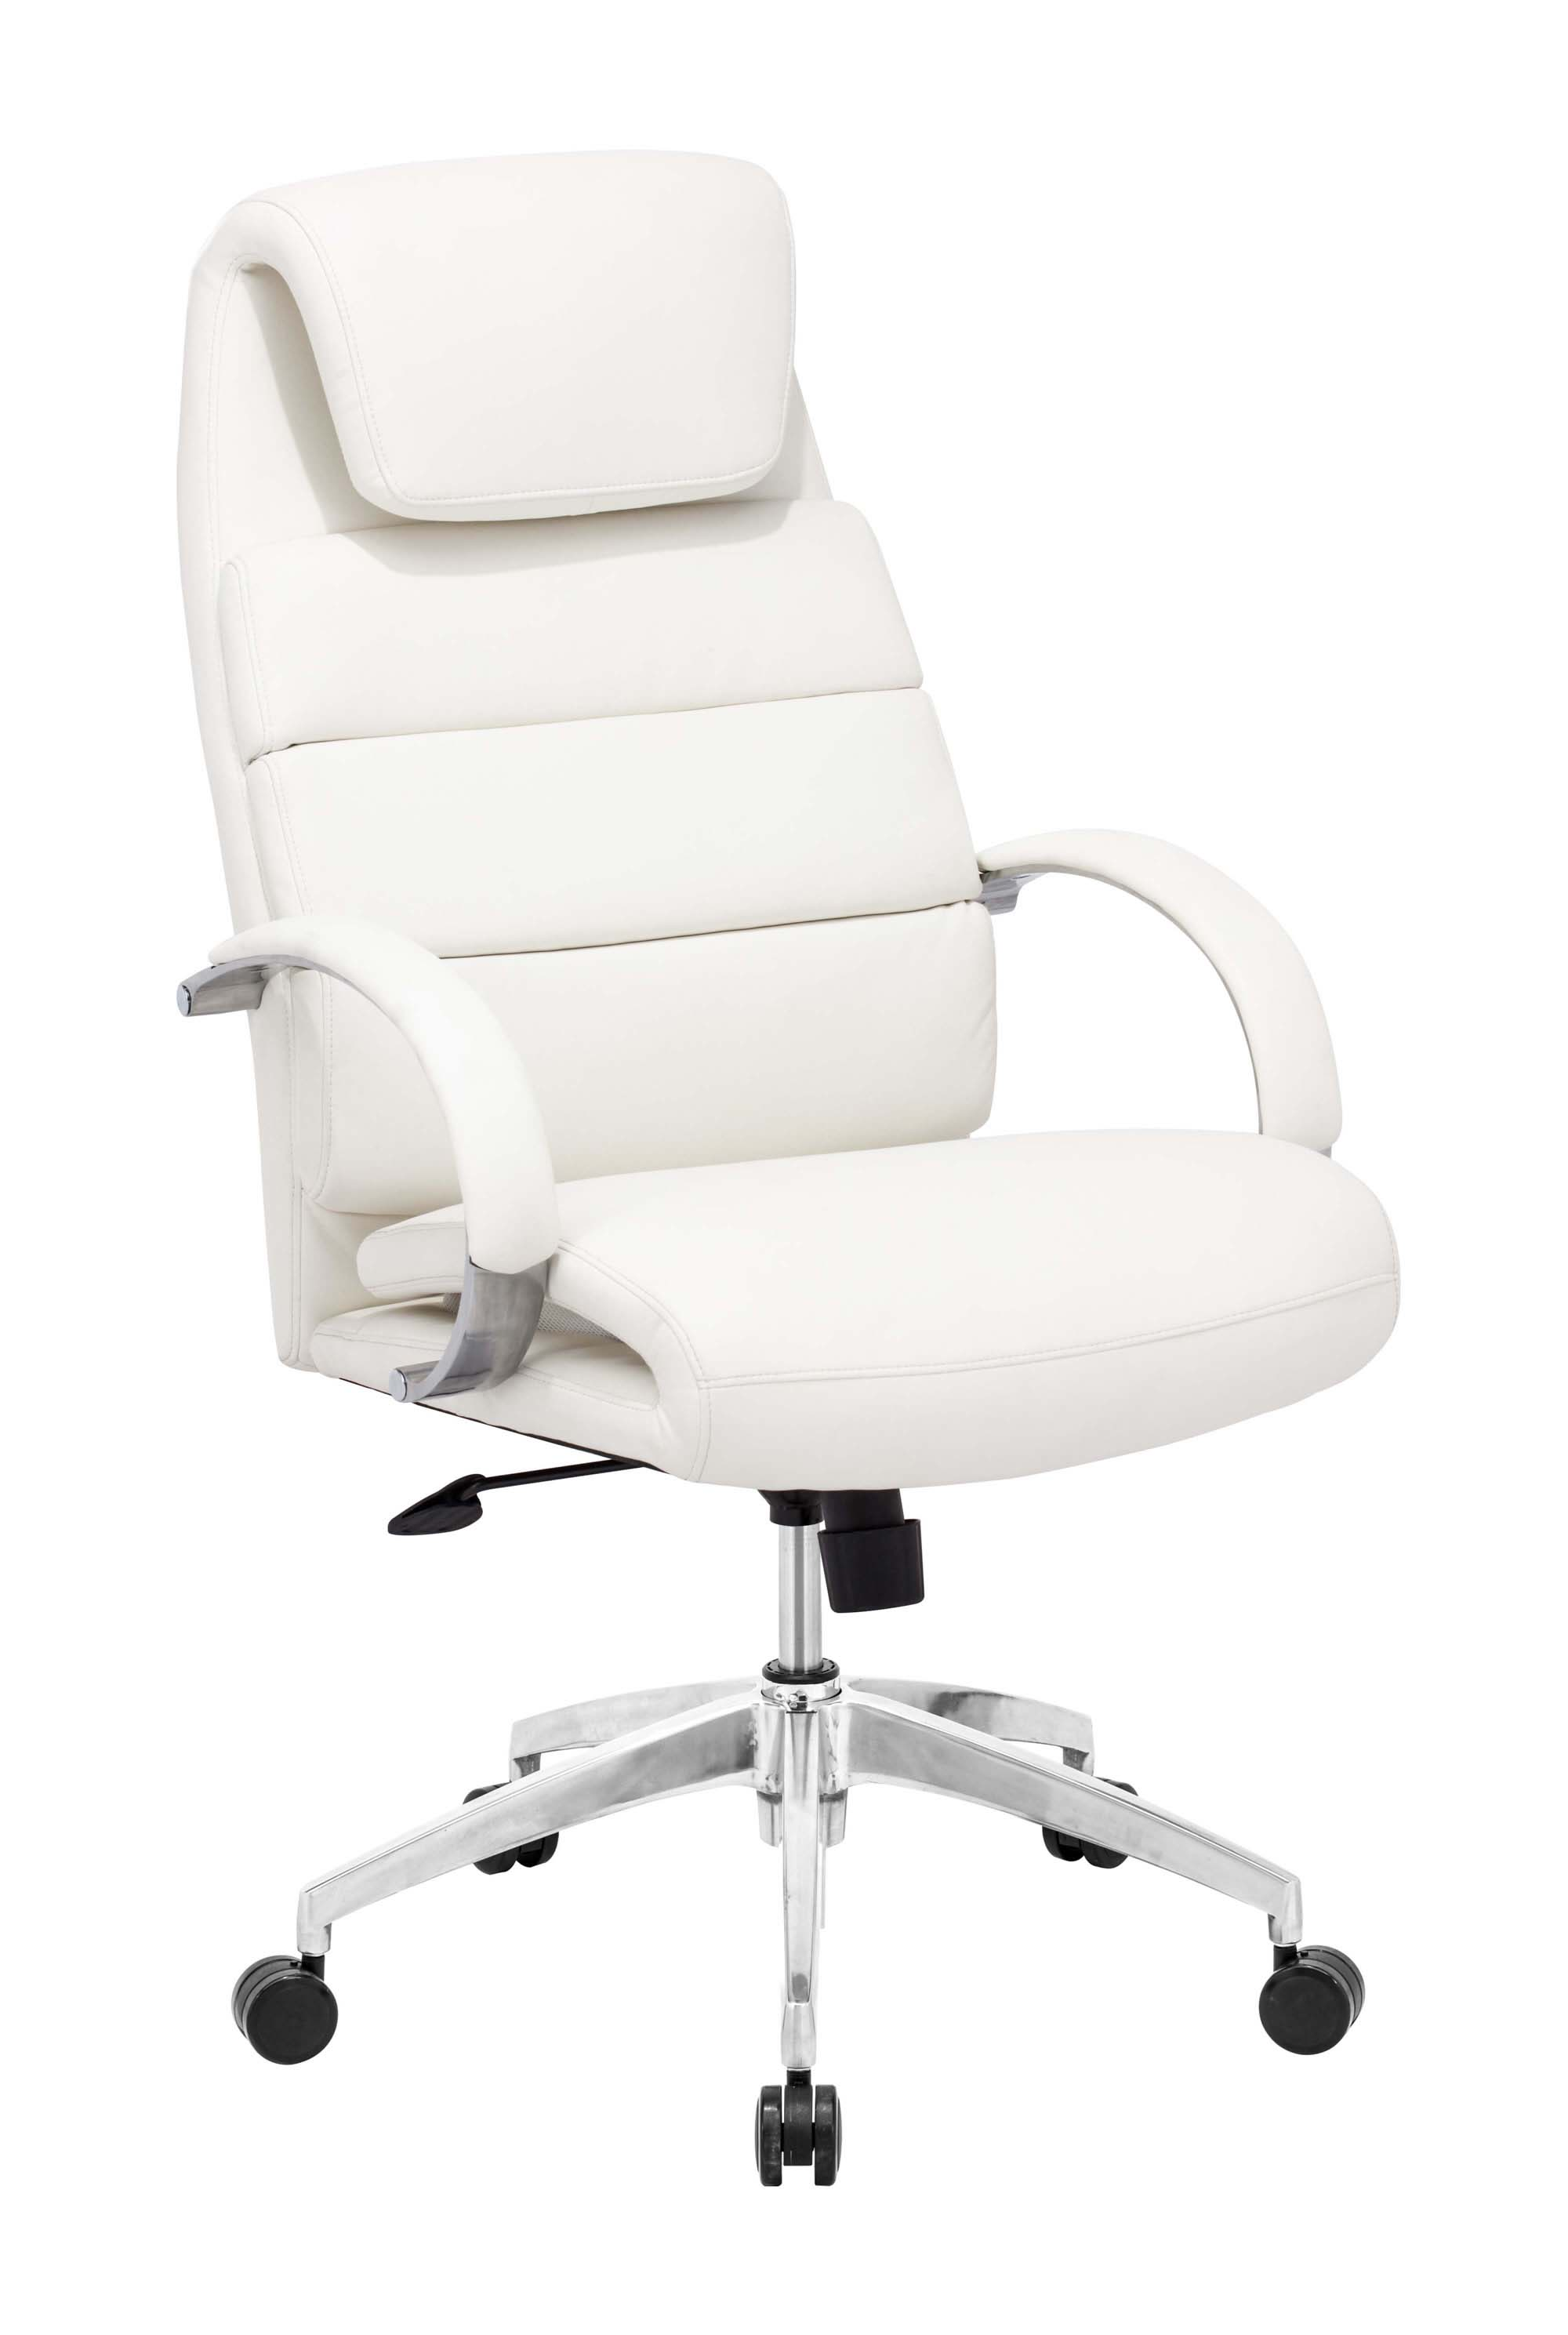 """27.5"""" x 27.5"""" x 44.5"""" White, Leatherette, Polished Aluminum, Comfort Office Chair"""